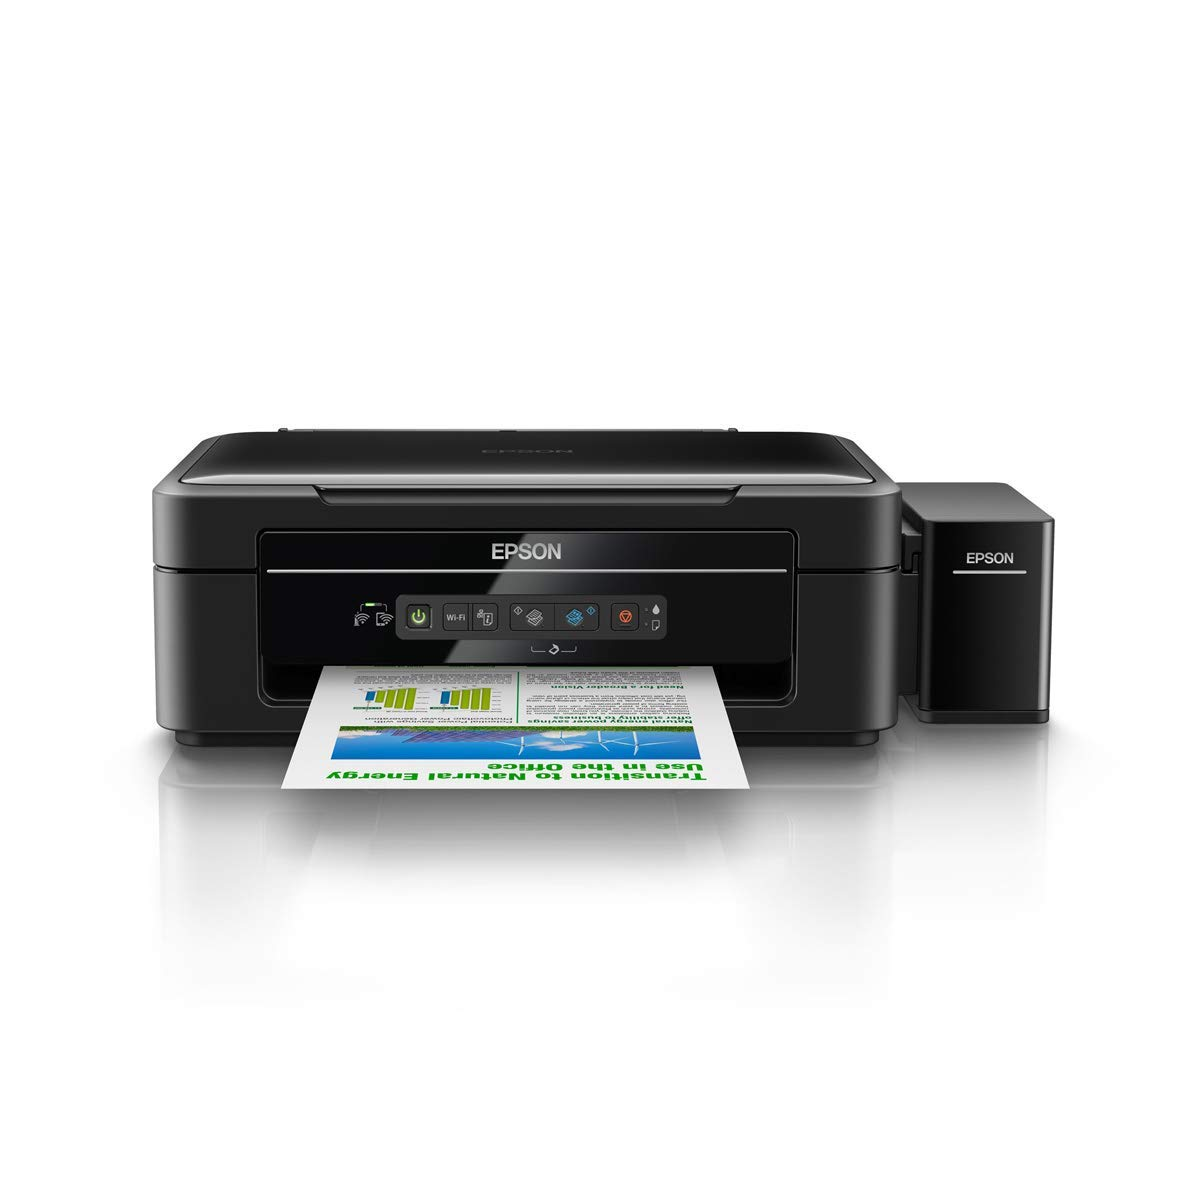 EPSON L405 ALL-IN-ONE WIRELESS INK TANK COLOUR PRINTER Reviews